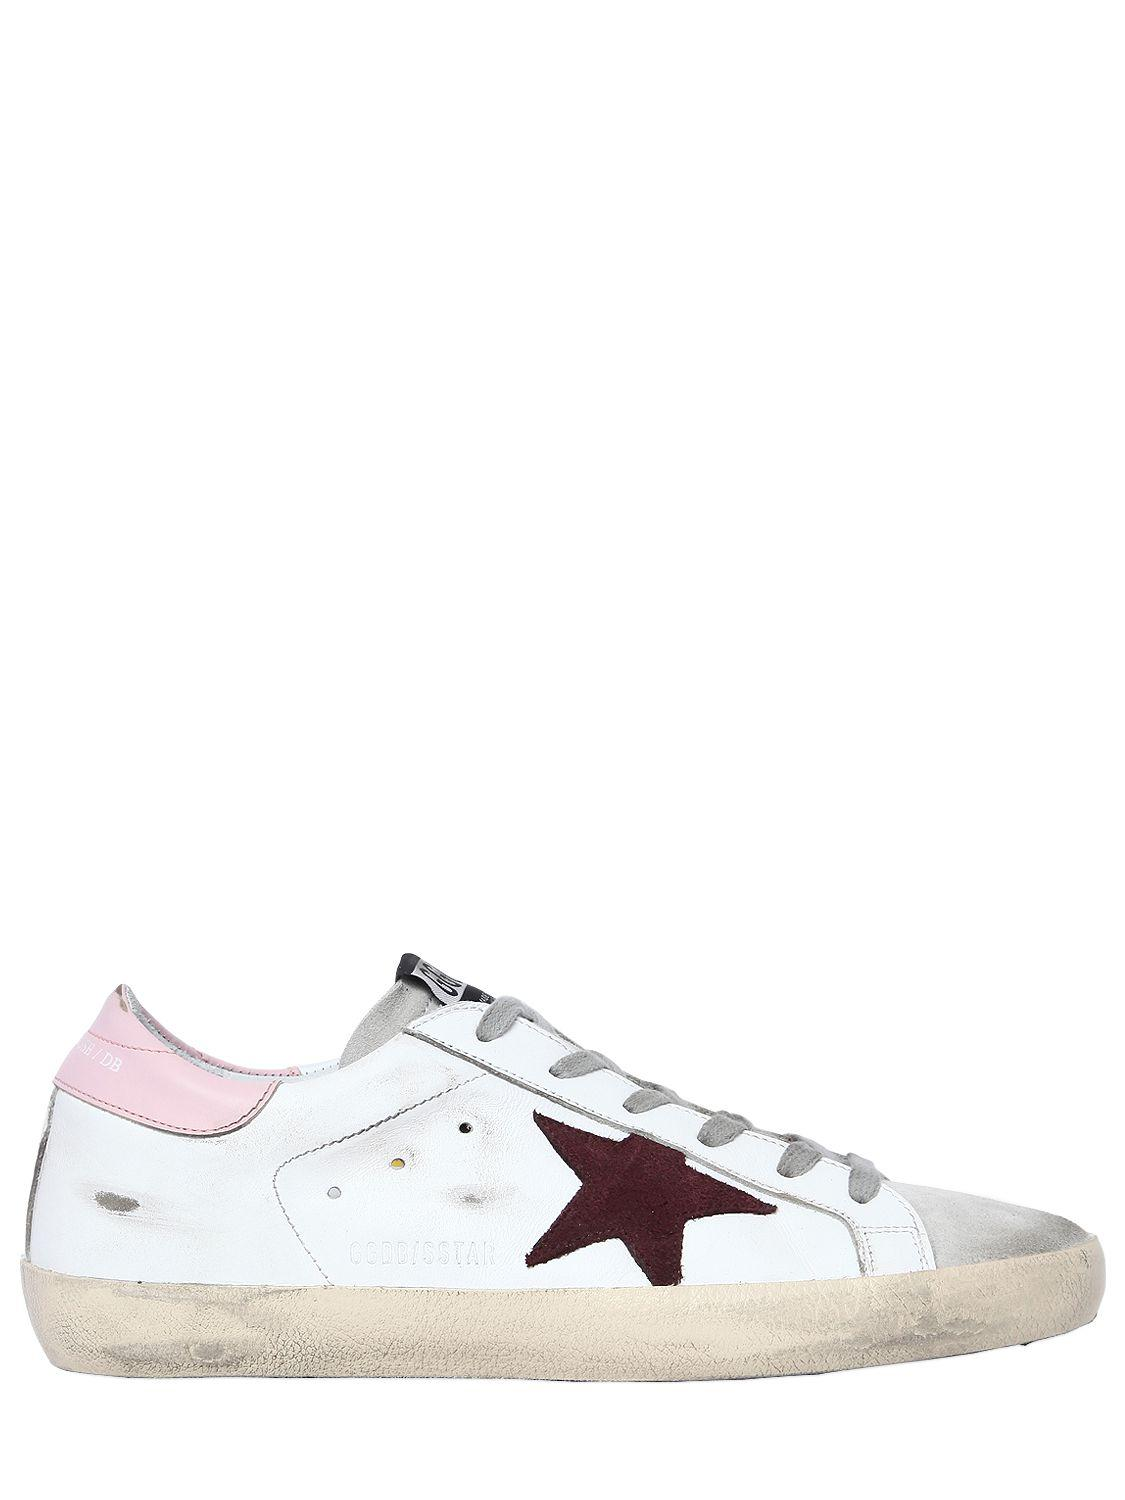 528cb8081ade Golden Goose Deluxe Brand. Women s White 20mm Super Star Leather Sneakers